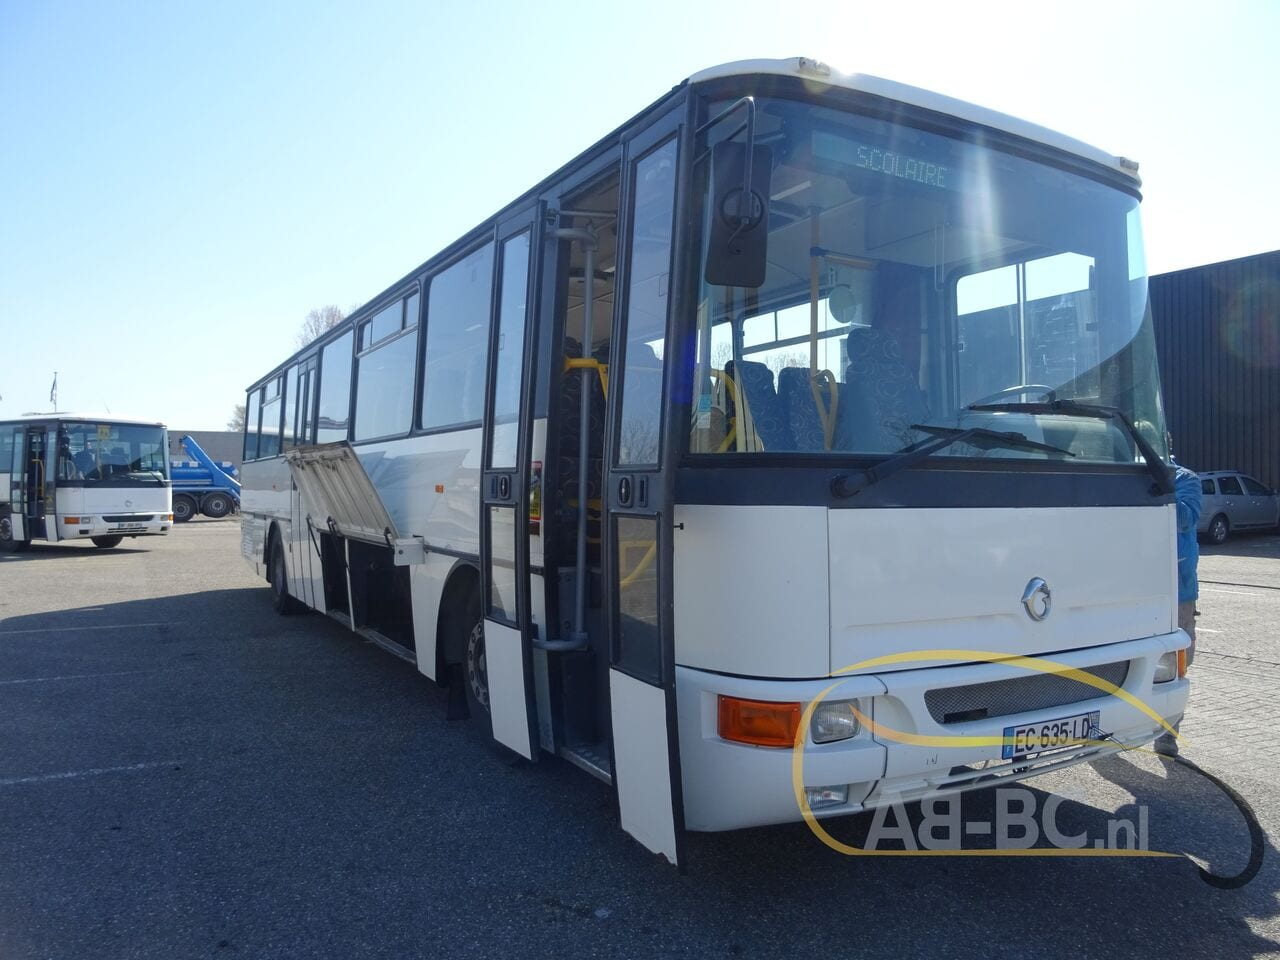 interurban-busIVECO-Irisbus-Recreo-59-Seats---1619430449975310776_big_65480695159d8778732c650e423c59fd--21042612454255740900